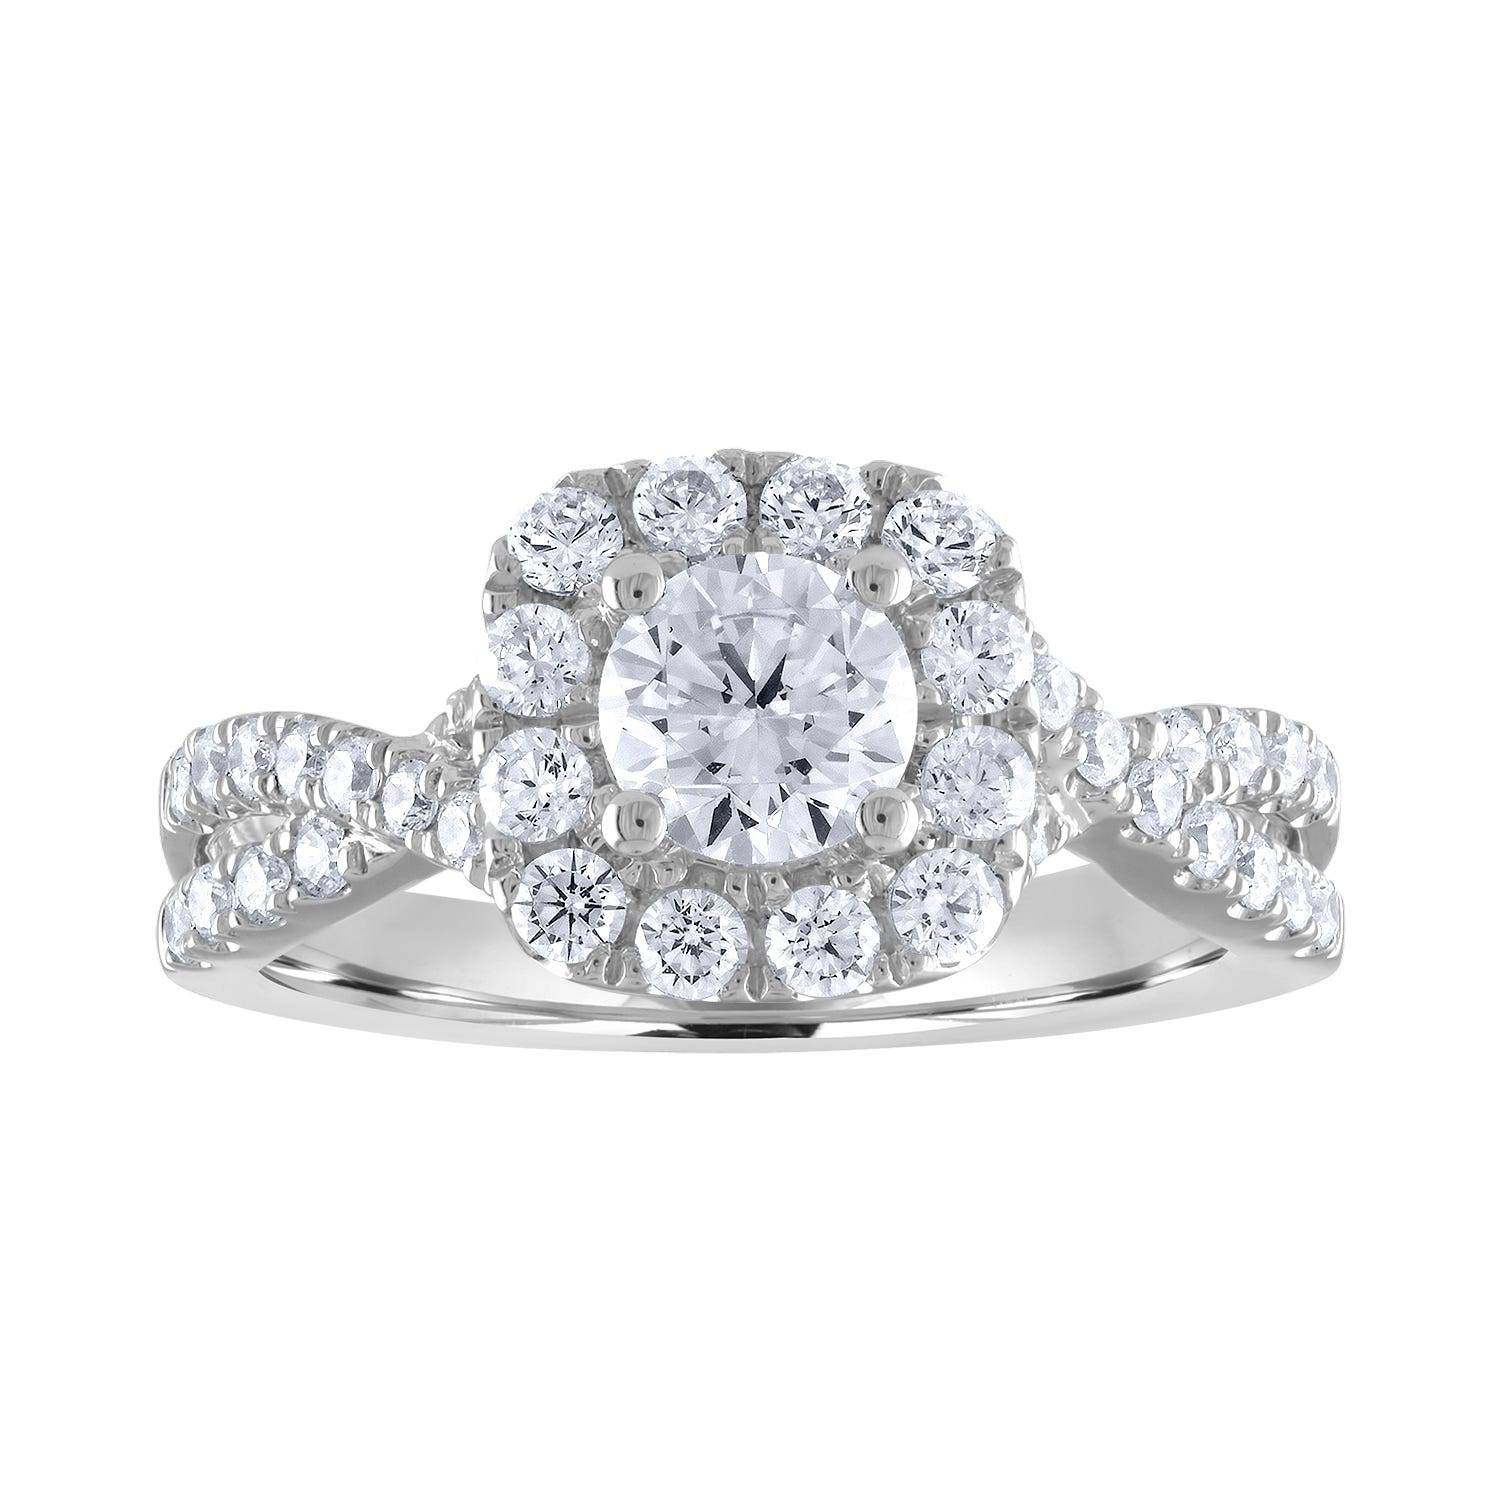 Lab Grown 1 1/2ct. Diamond Cushion-Cut Halo Twist Engagement Ring in 14k White Gold